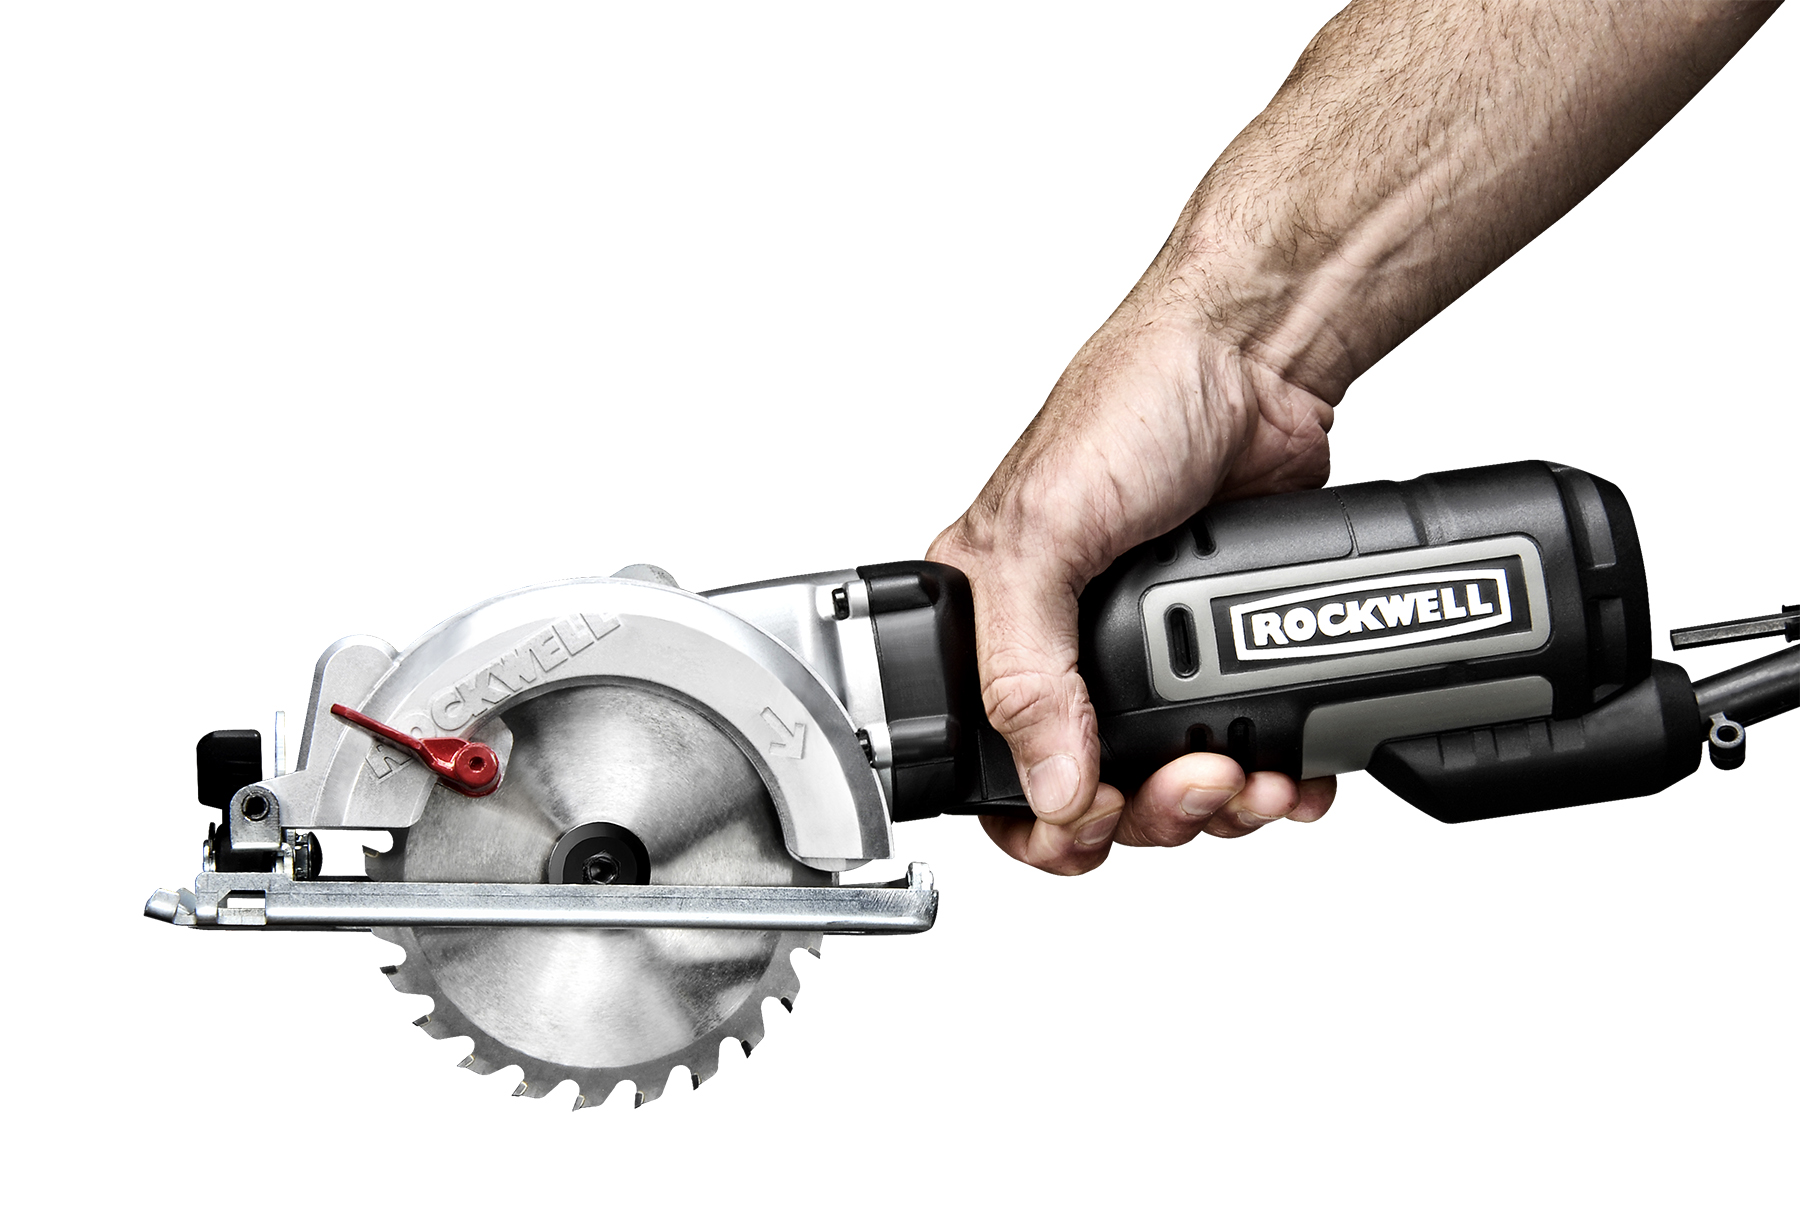 Look No Further Than Rockwell For Great New Holiday Tool Gifts